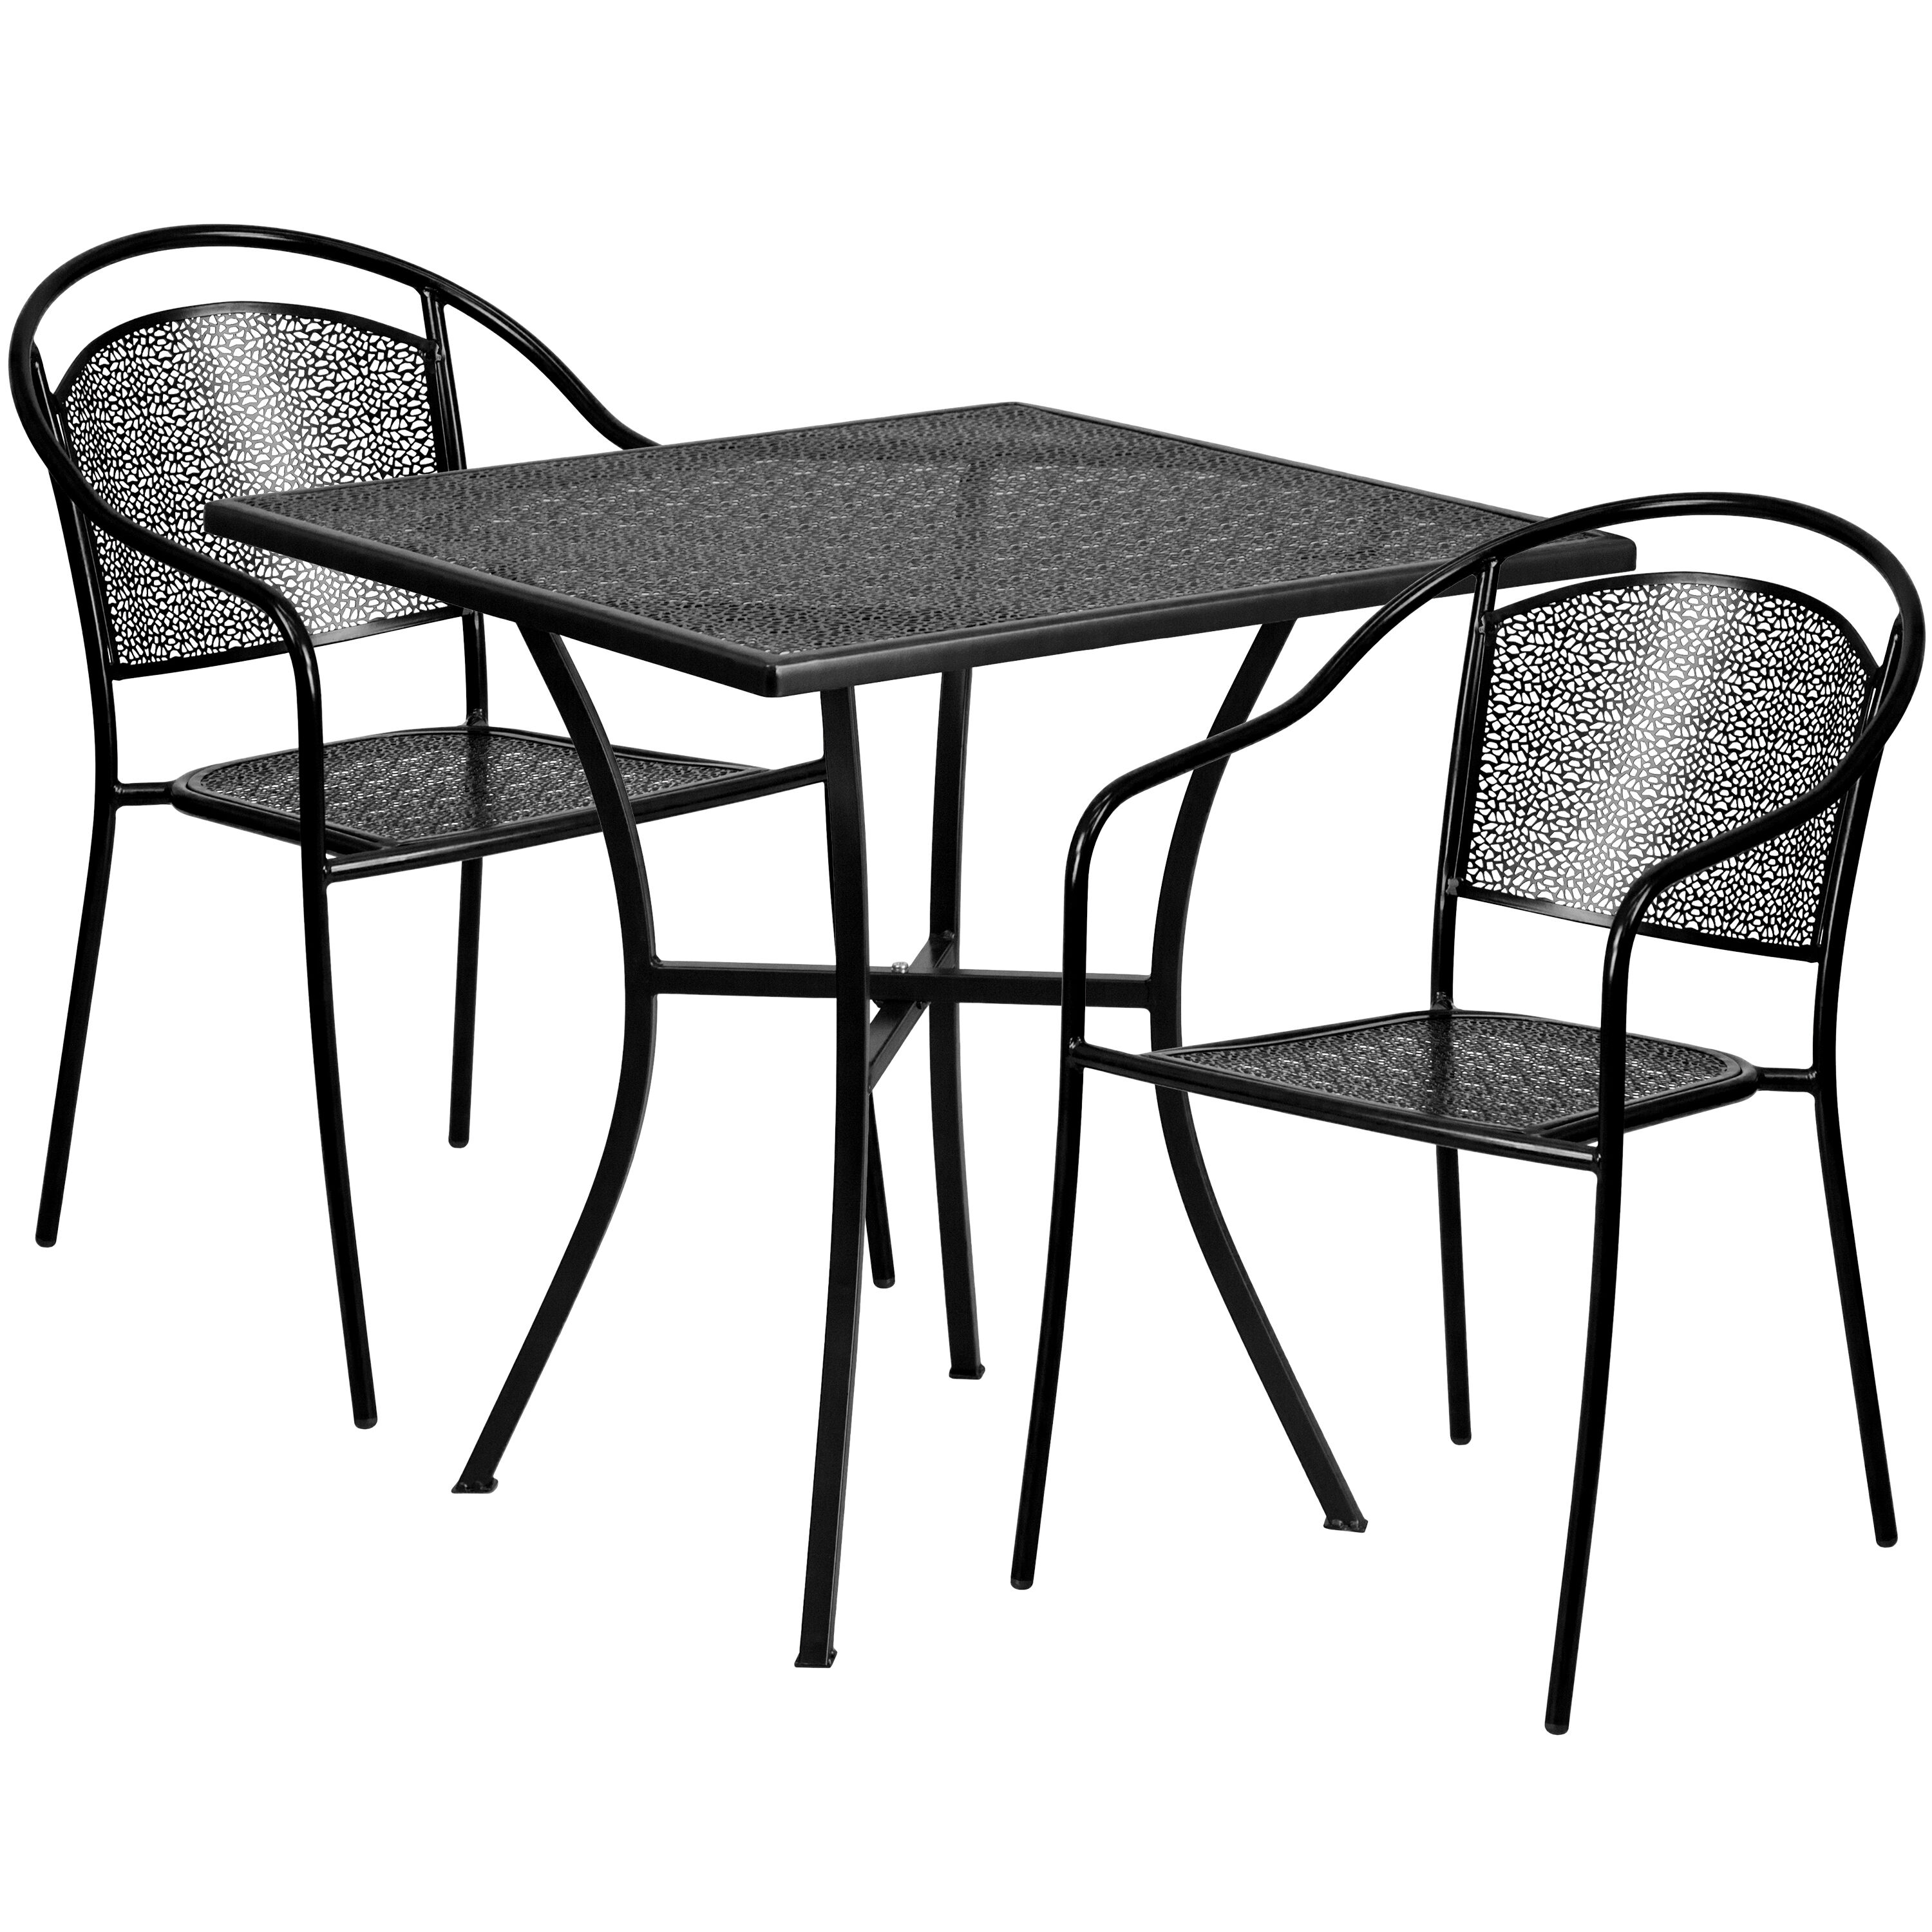 ... Our 28u0027u0027 Square Black Indoor-Outdoor Steel Patio Table Set with 2 Round  sc 1 st  Restaurant Furniture 4 Less & 28SQ Black Patio Table Set CO-28SQ-03CHR2-BK-GG ...